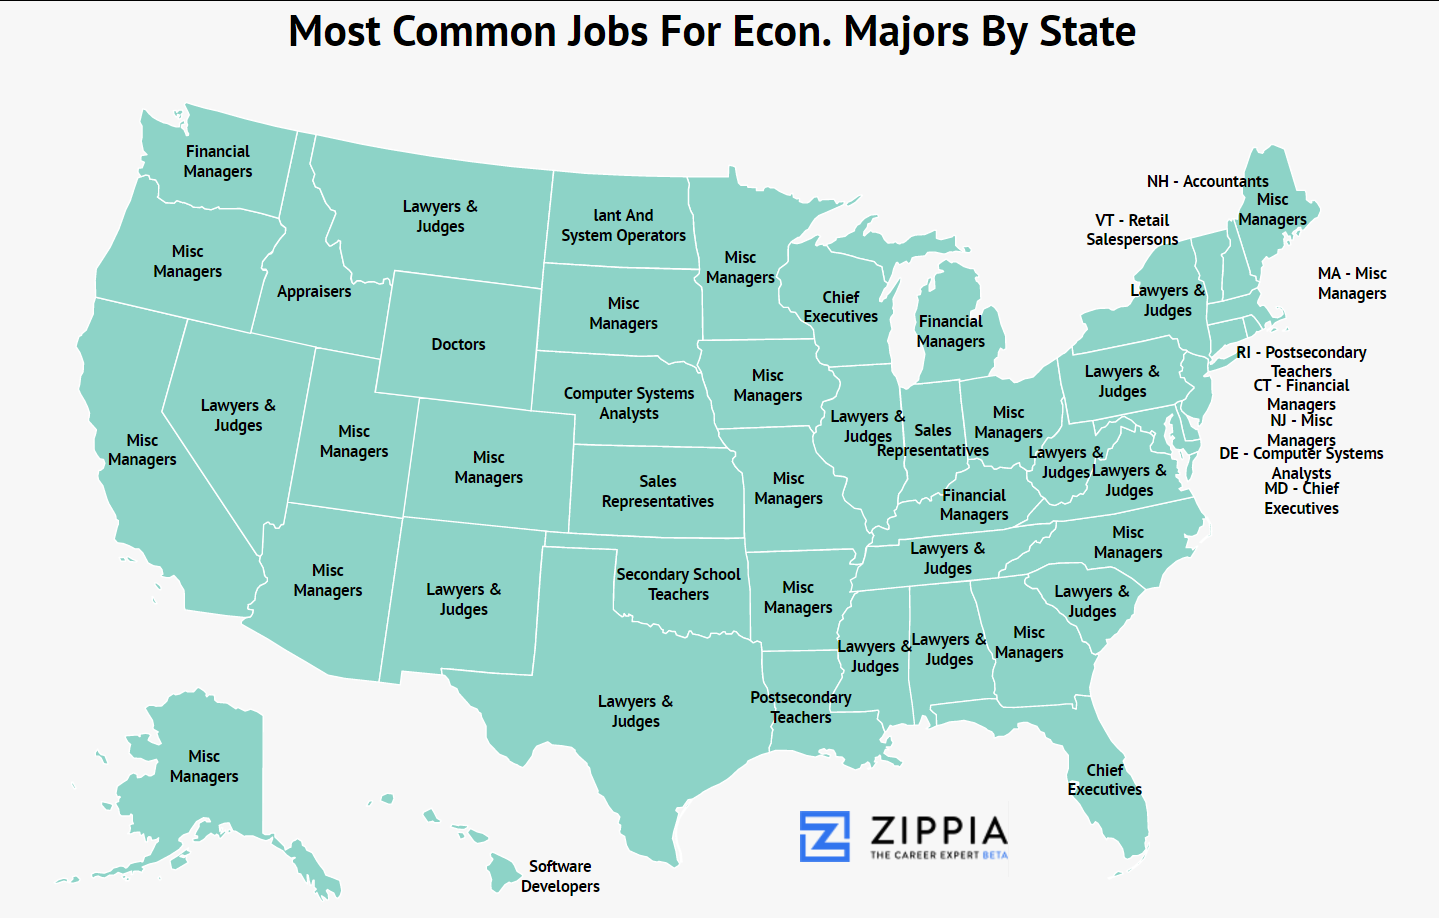 Breaking Down The Numbers The Most Common Jobs For Economics Majors By State